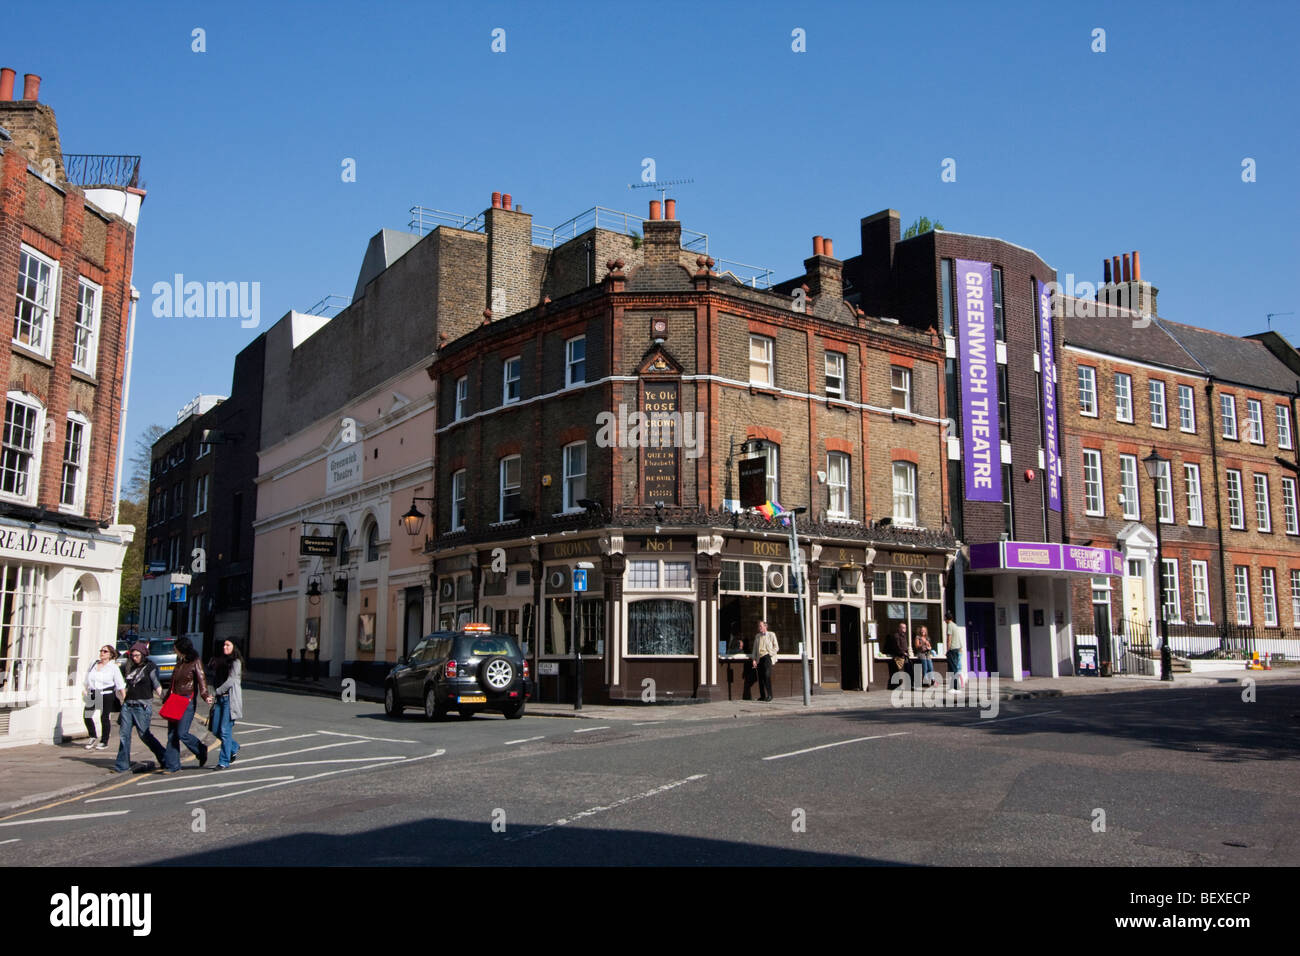 Greenwich Theatre on Stockwell Street, UK. - Stock Image